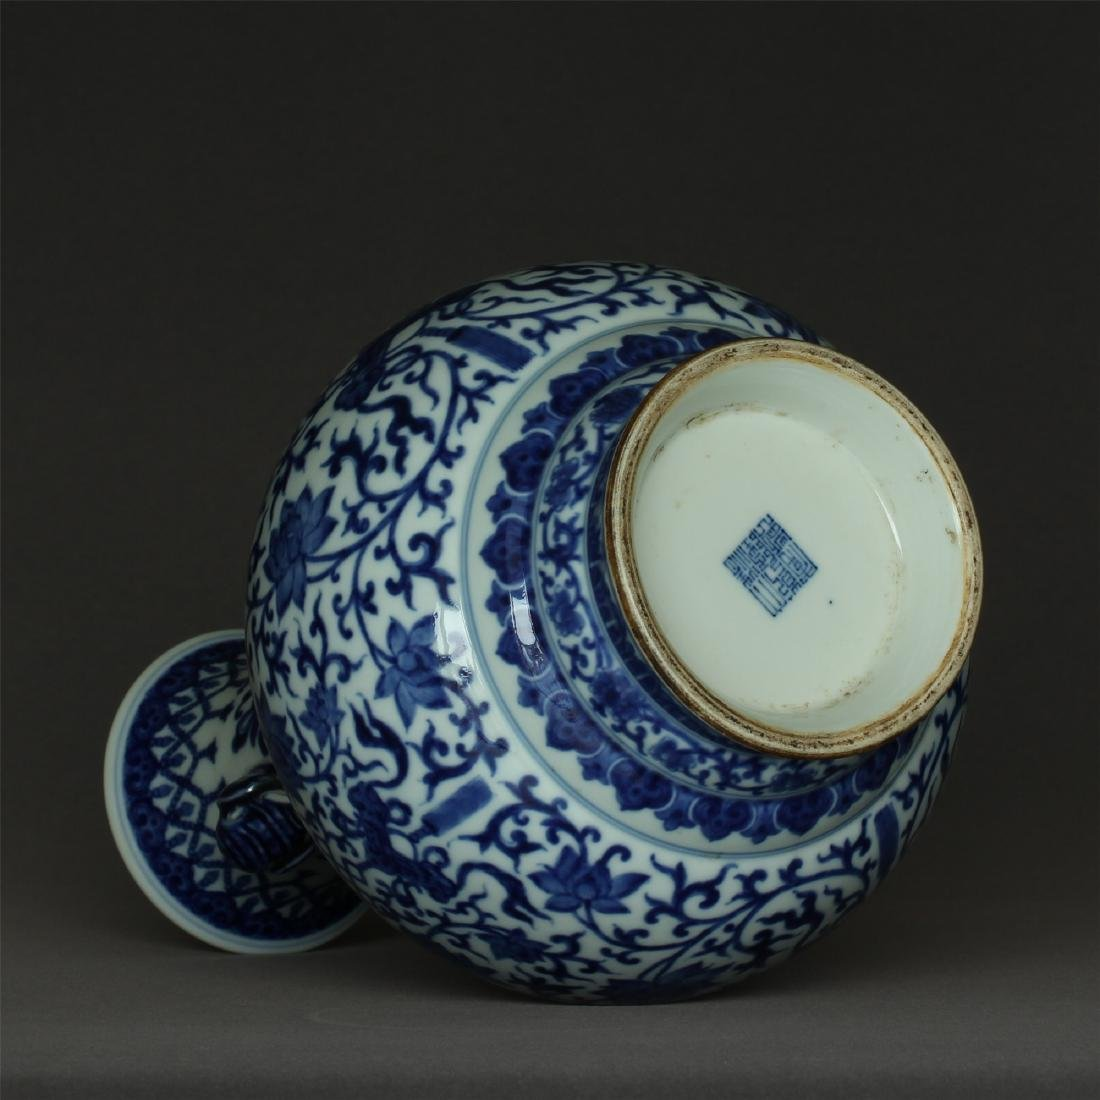 Chinese blue and white porcelain vase of Qing Dynasty - 4